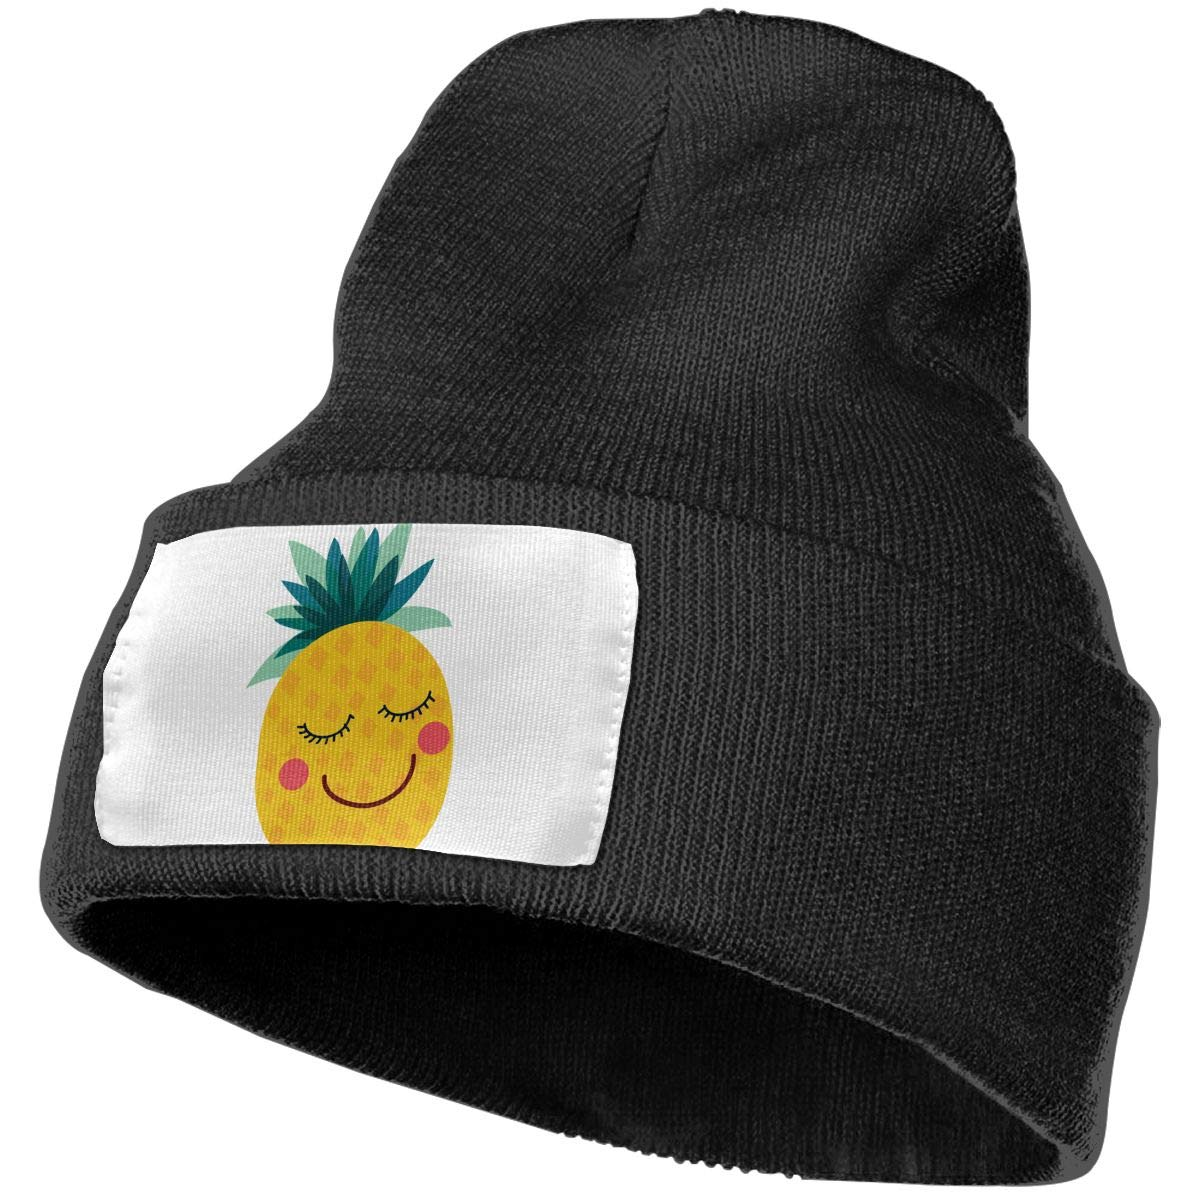 QZqDQ Lovely Pineapple Unisex Fashion Knitted Hat Luxury Hip-Hop Cap